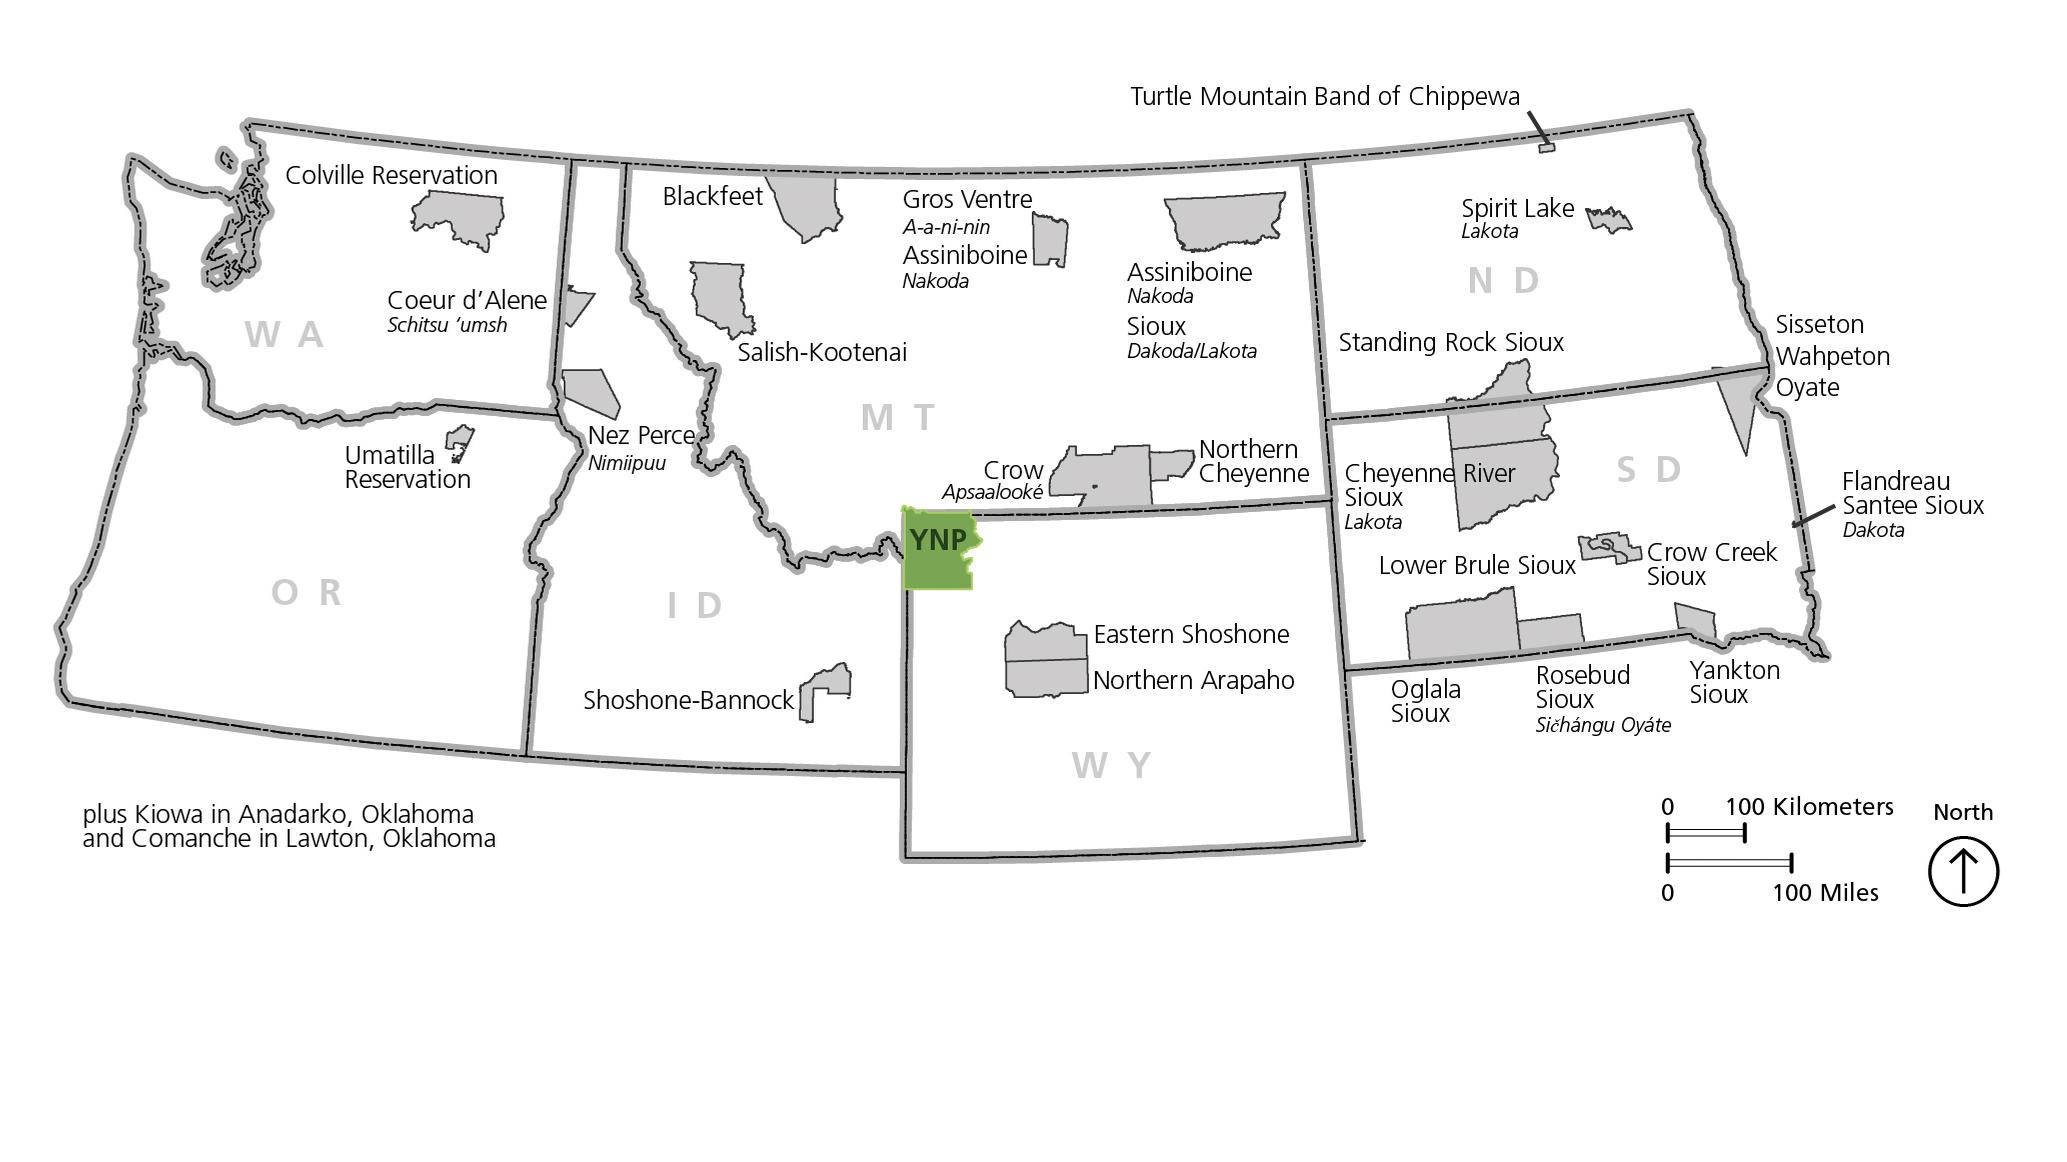 photograph regarding Native American Regions Map Printable identify Historical Tribes - Yellowstone Nationwide Park (U.S. Countrywide